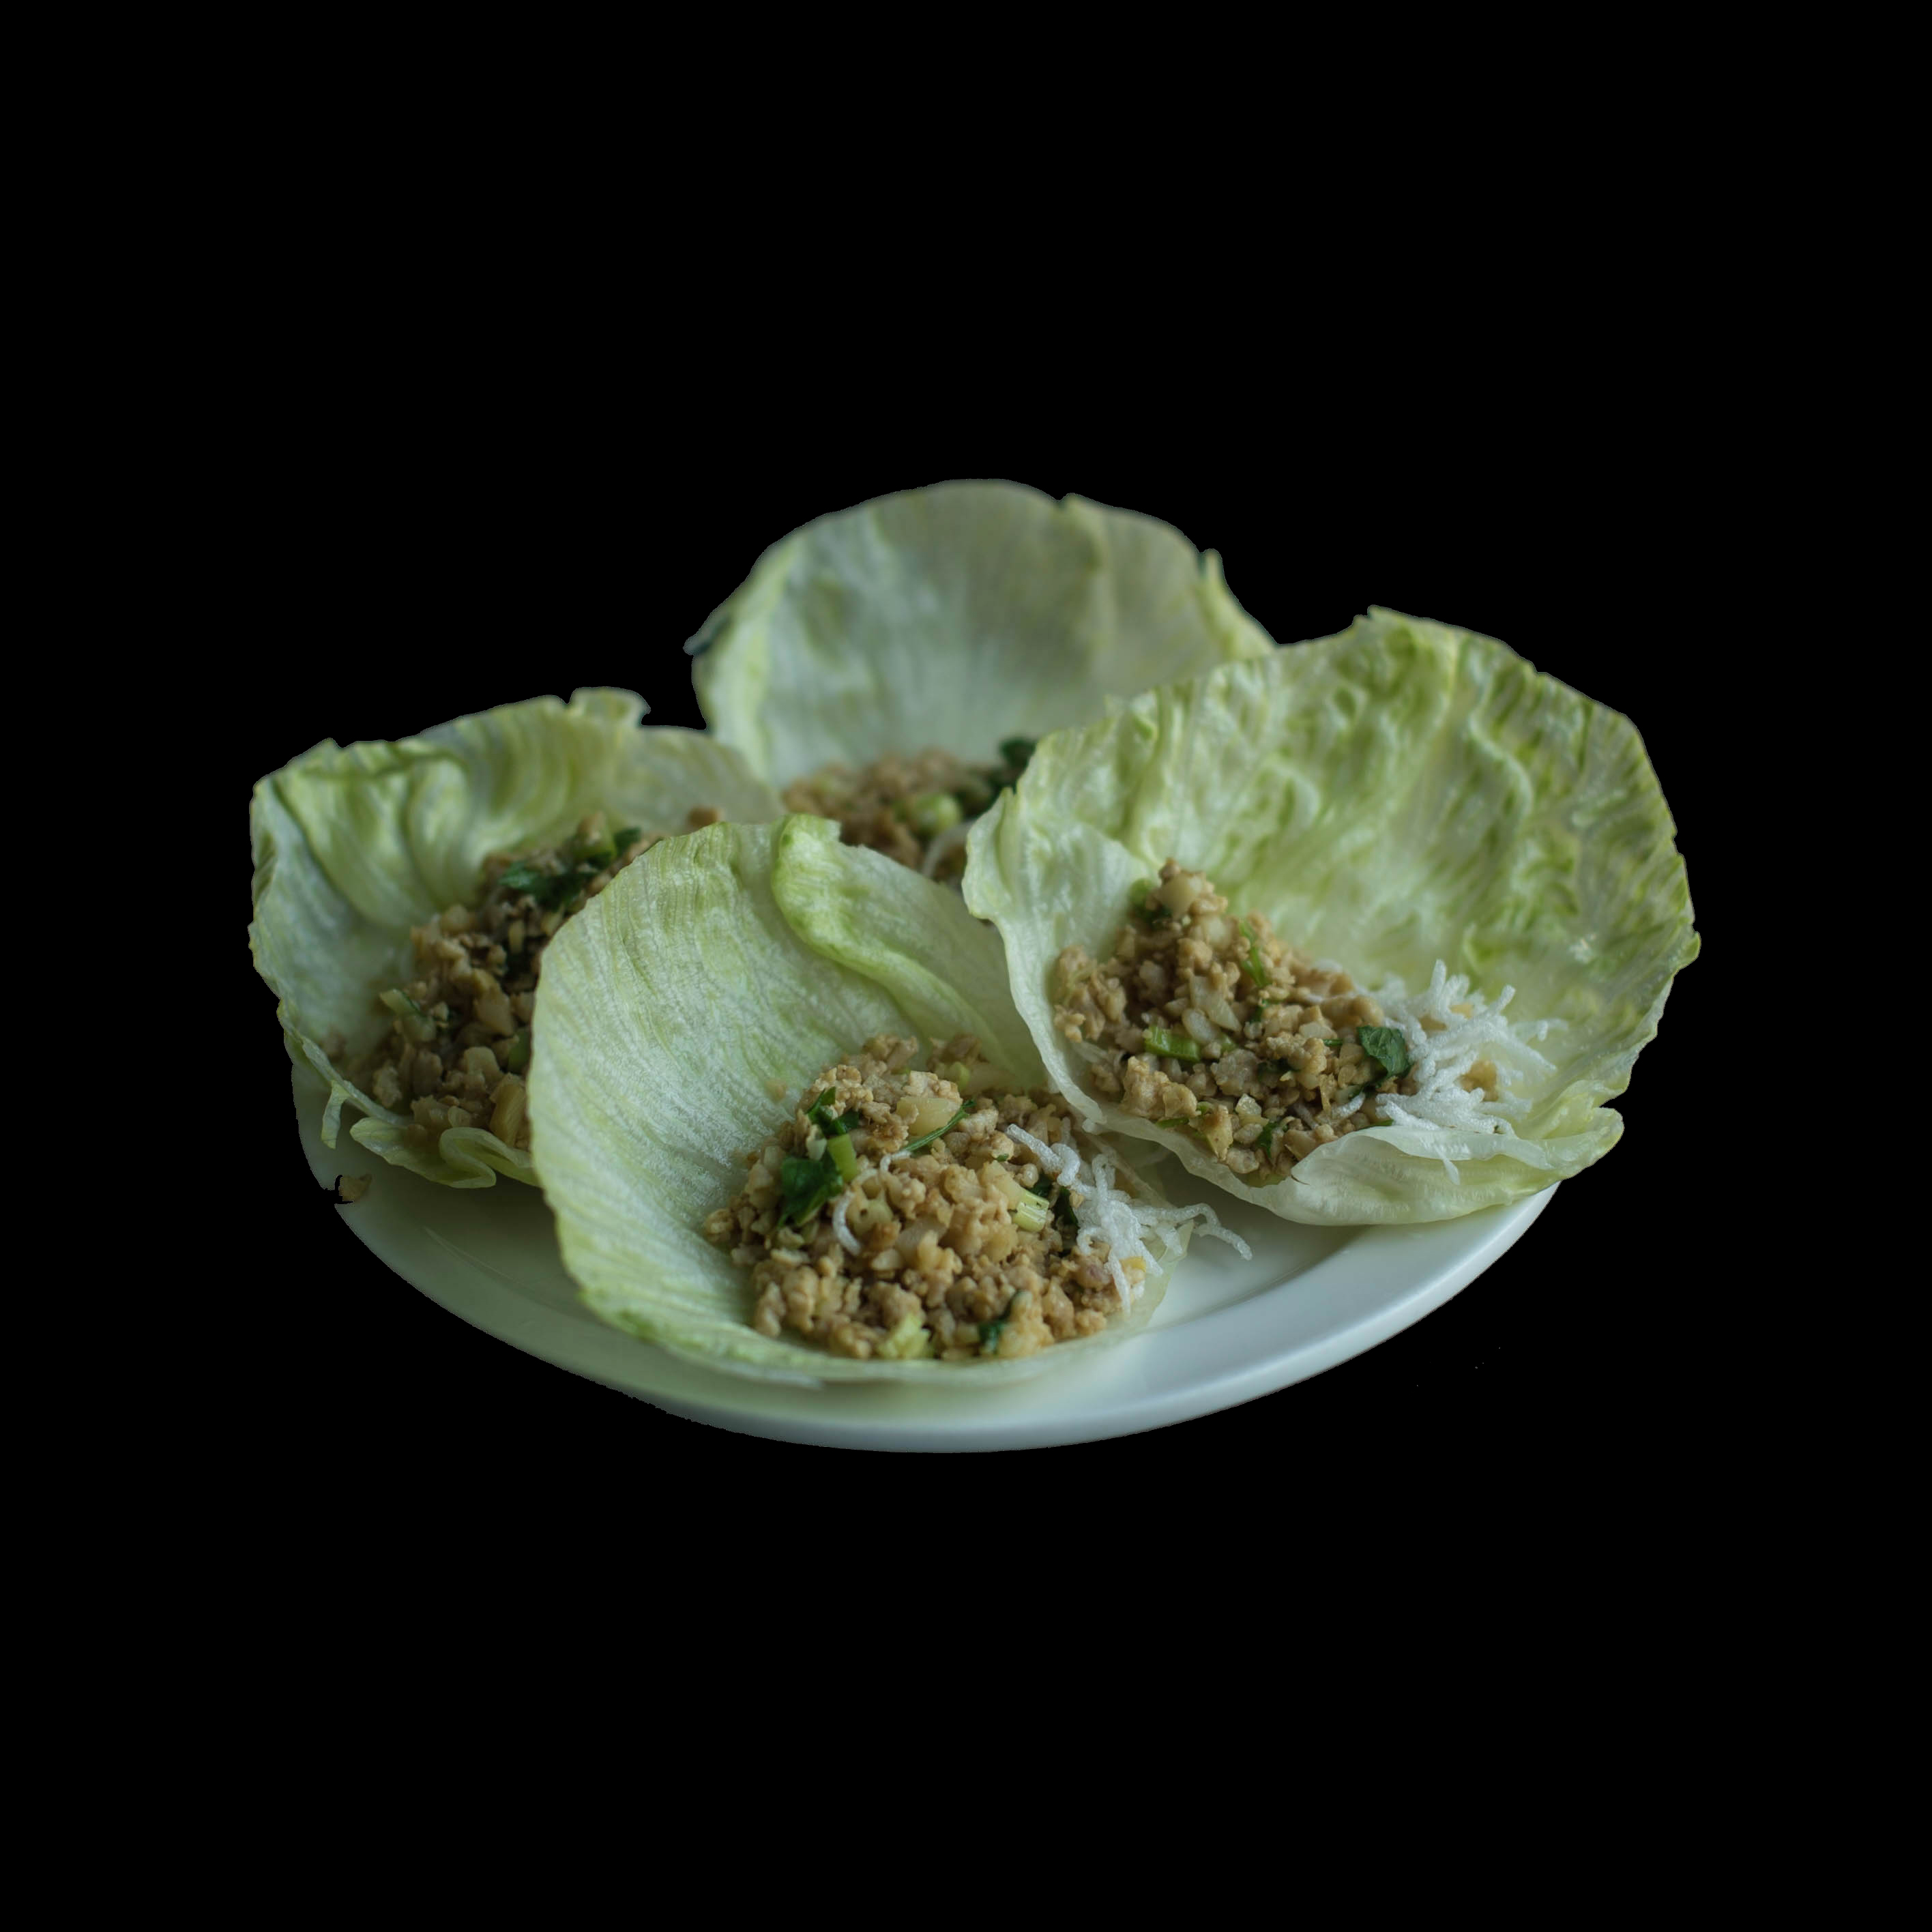 40. 鸡松肉卷生菜 Minced Chicken w/ Lettuce Wrap